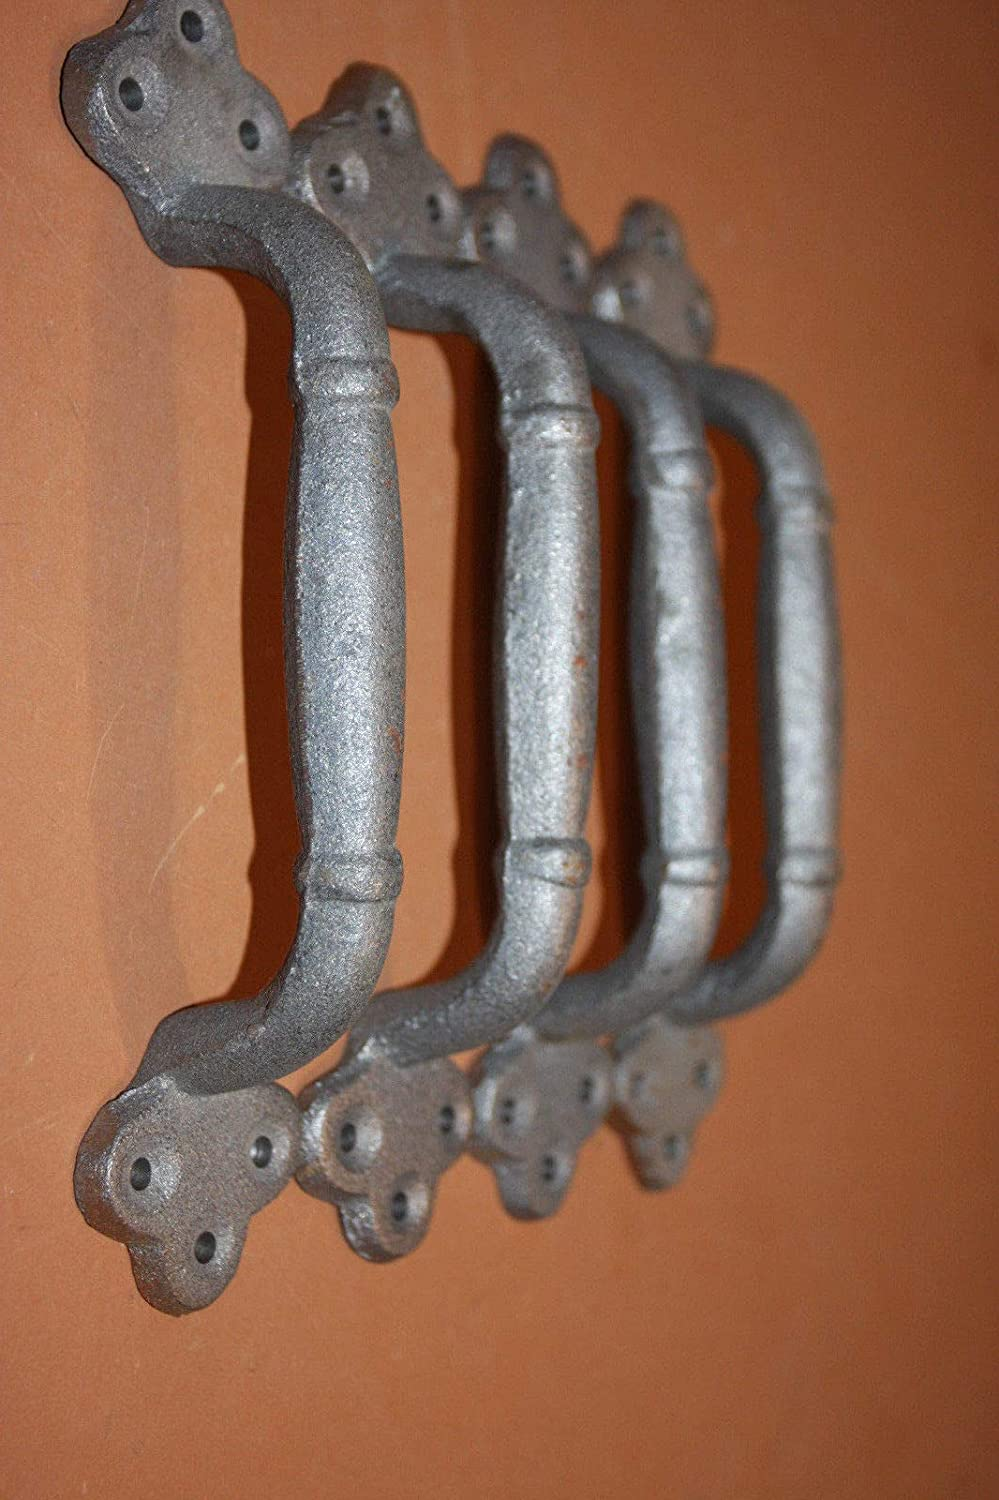 Large Decorative Gate Pulls Handles 9 inches Long Unfinished Cast Iron Set of 4 HW-11 8 1//8 inch Center